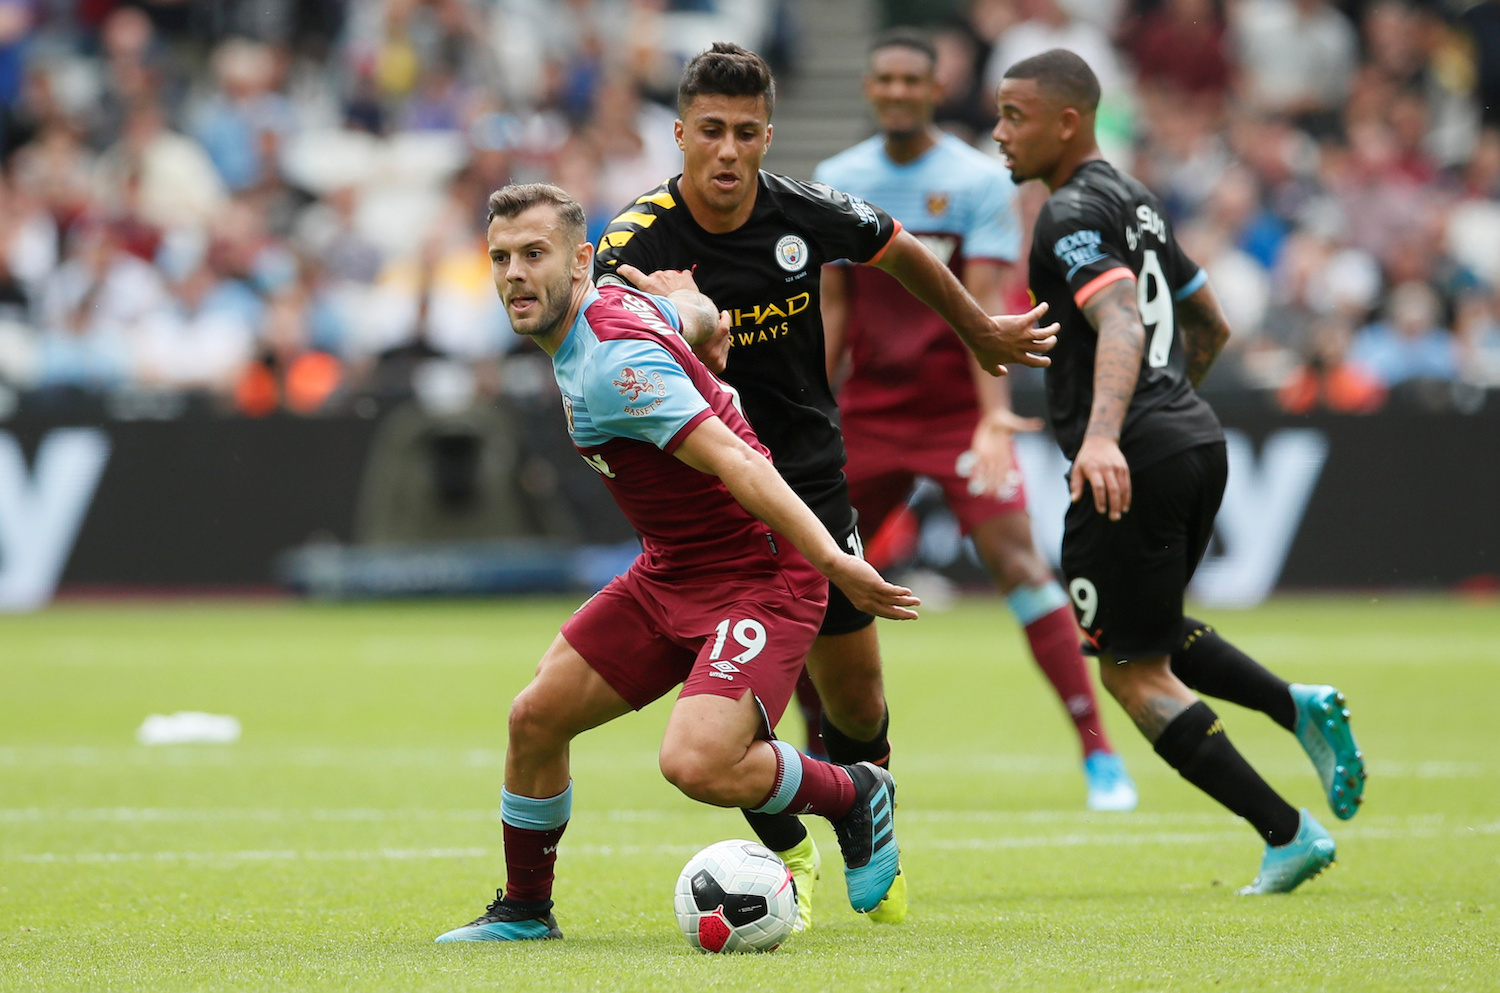 Manchester City Defeat Won't Define Our Season, Says West Ham Star